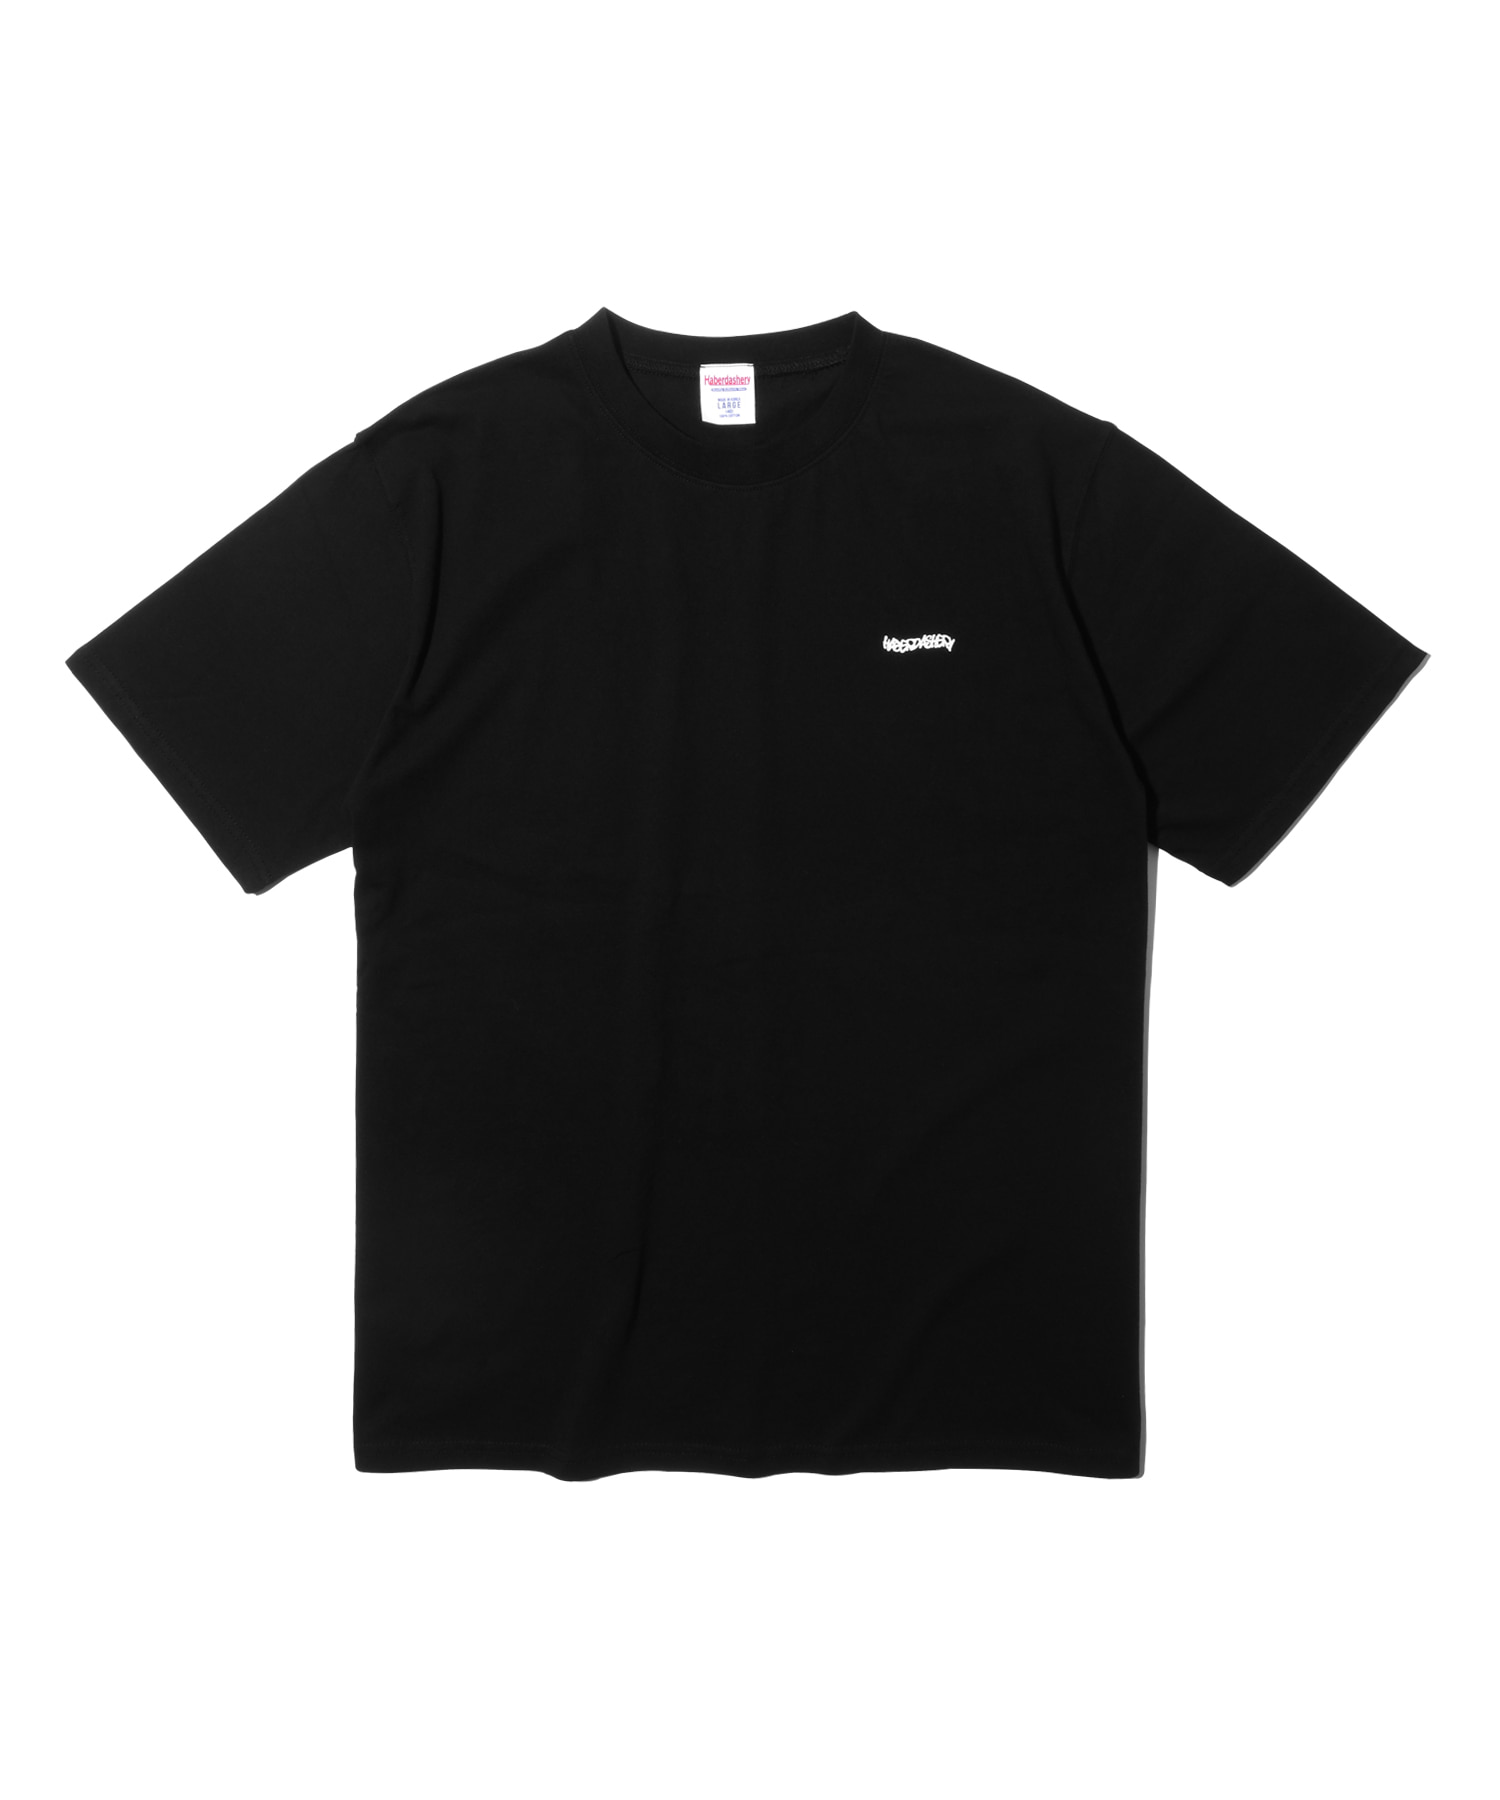 해버대셔리 WAVE SHORT SLEEVE_Black